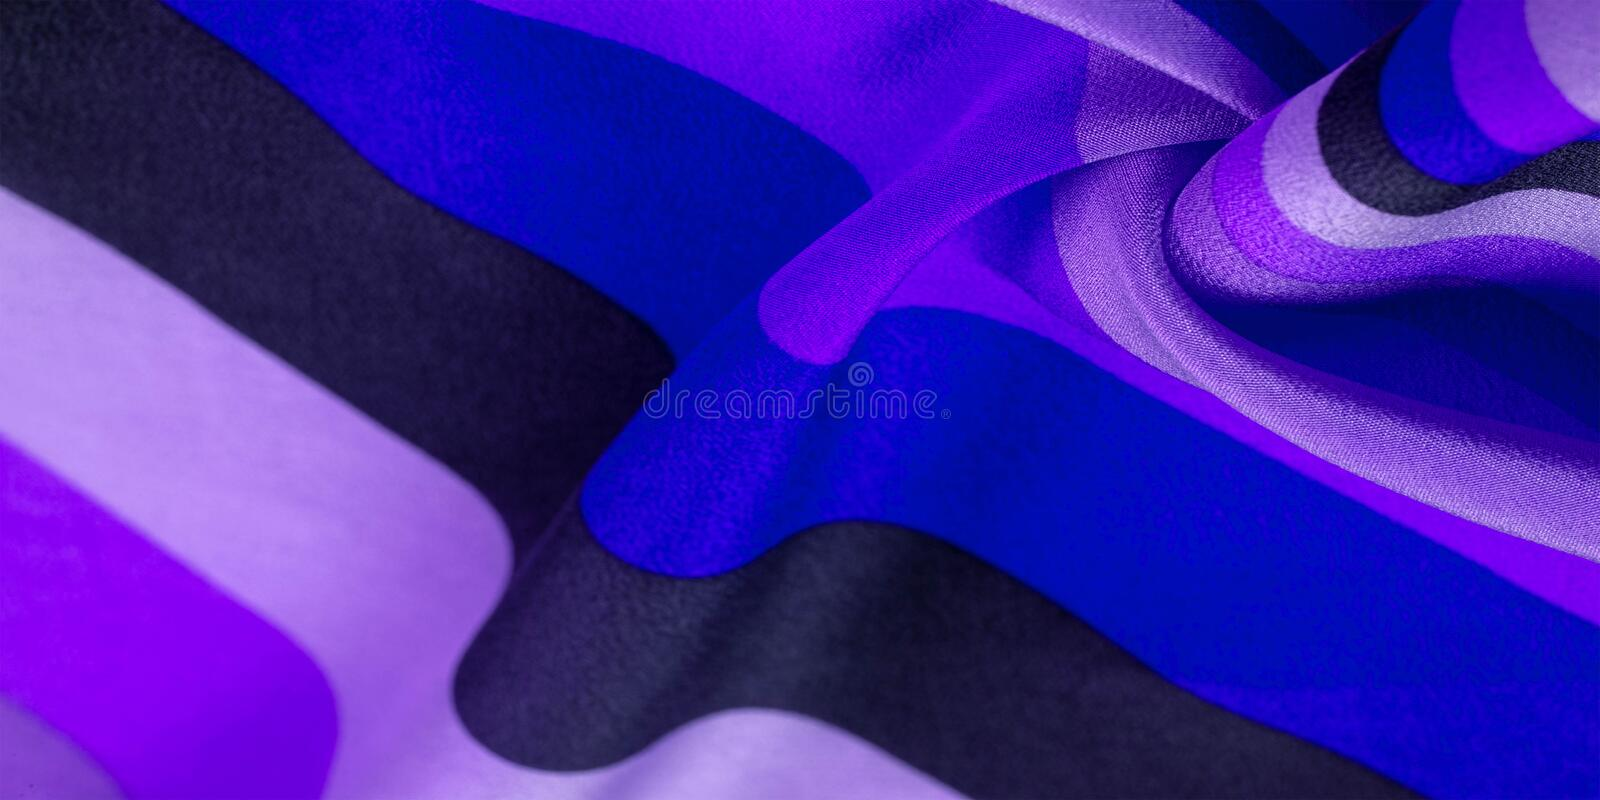 Silk fabric, striped fabric blue azure pearly white lines, exquisite design. The photo is intended for, interior, imitation,. Fashion designer, marketing royalty free stock photos